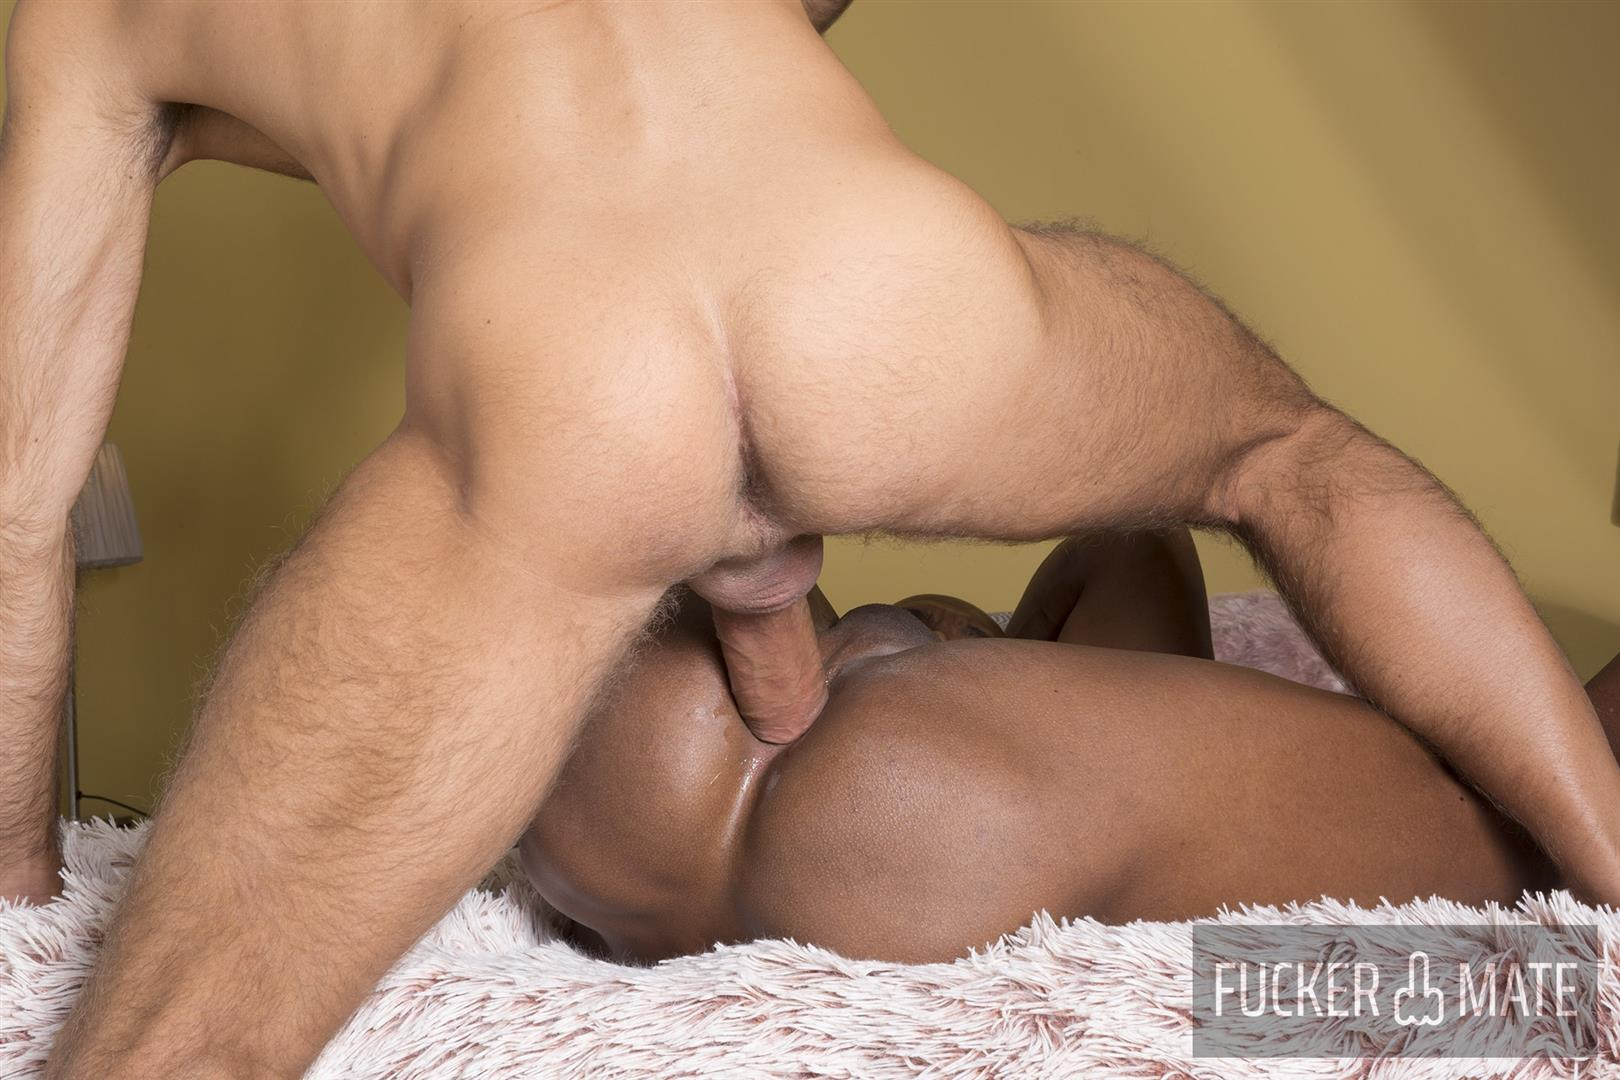 Fuckermate-Vadim-Romanov-and-Santi-Konnor-Huge-uncut-bareback-cock-13 Thick Russian Alpha Dick Bareback Fucking Latin Bottom Santi Konnor